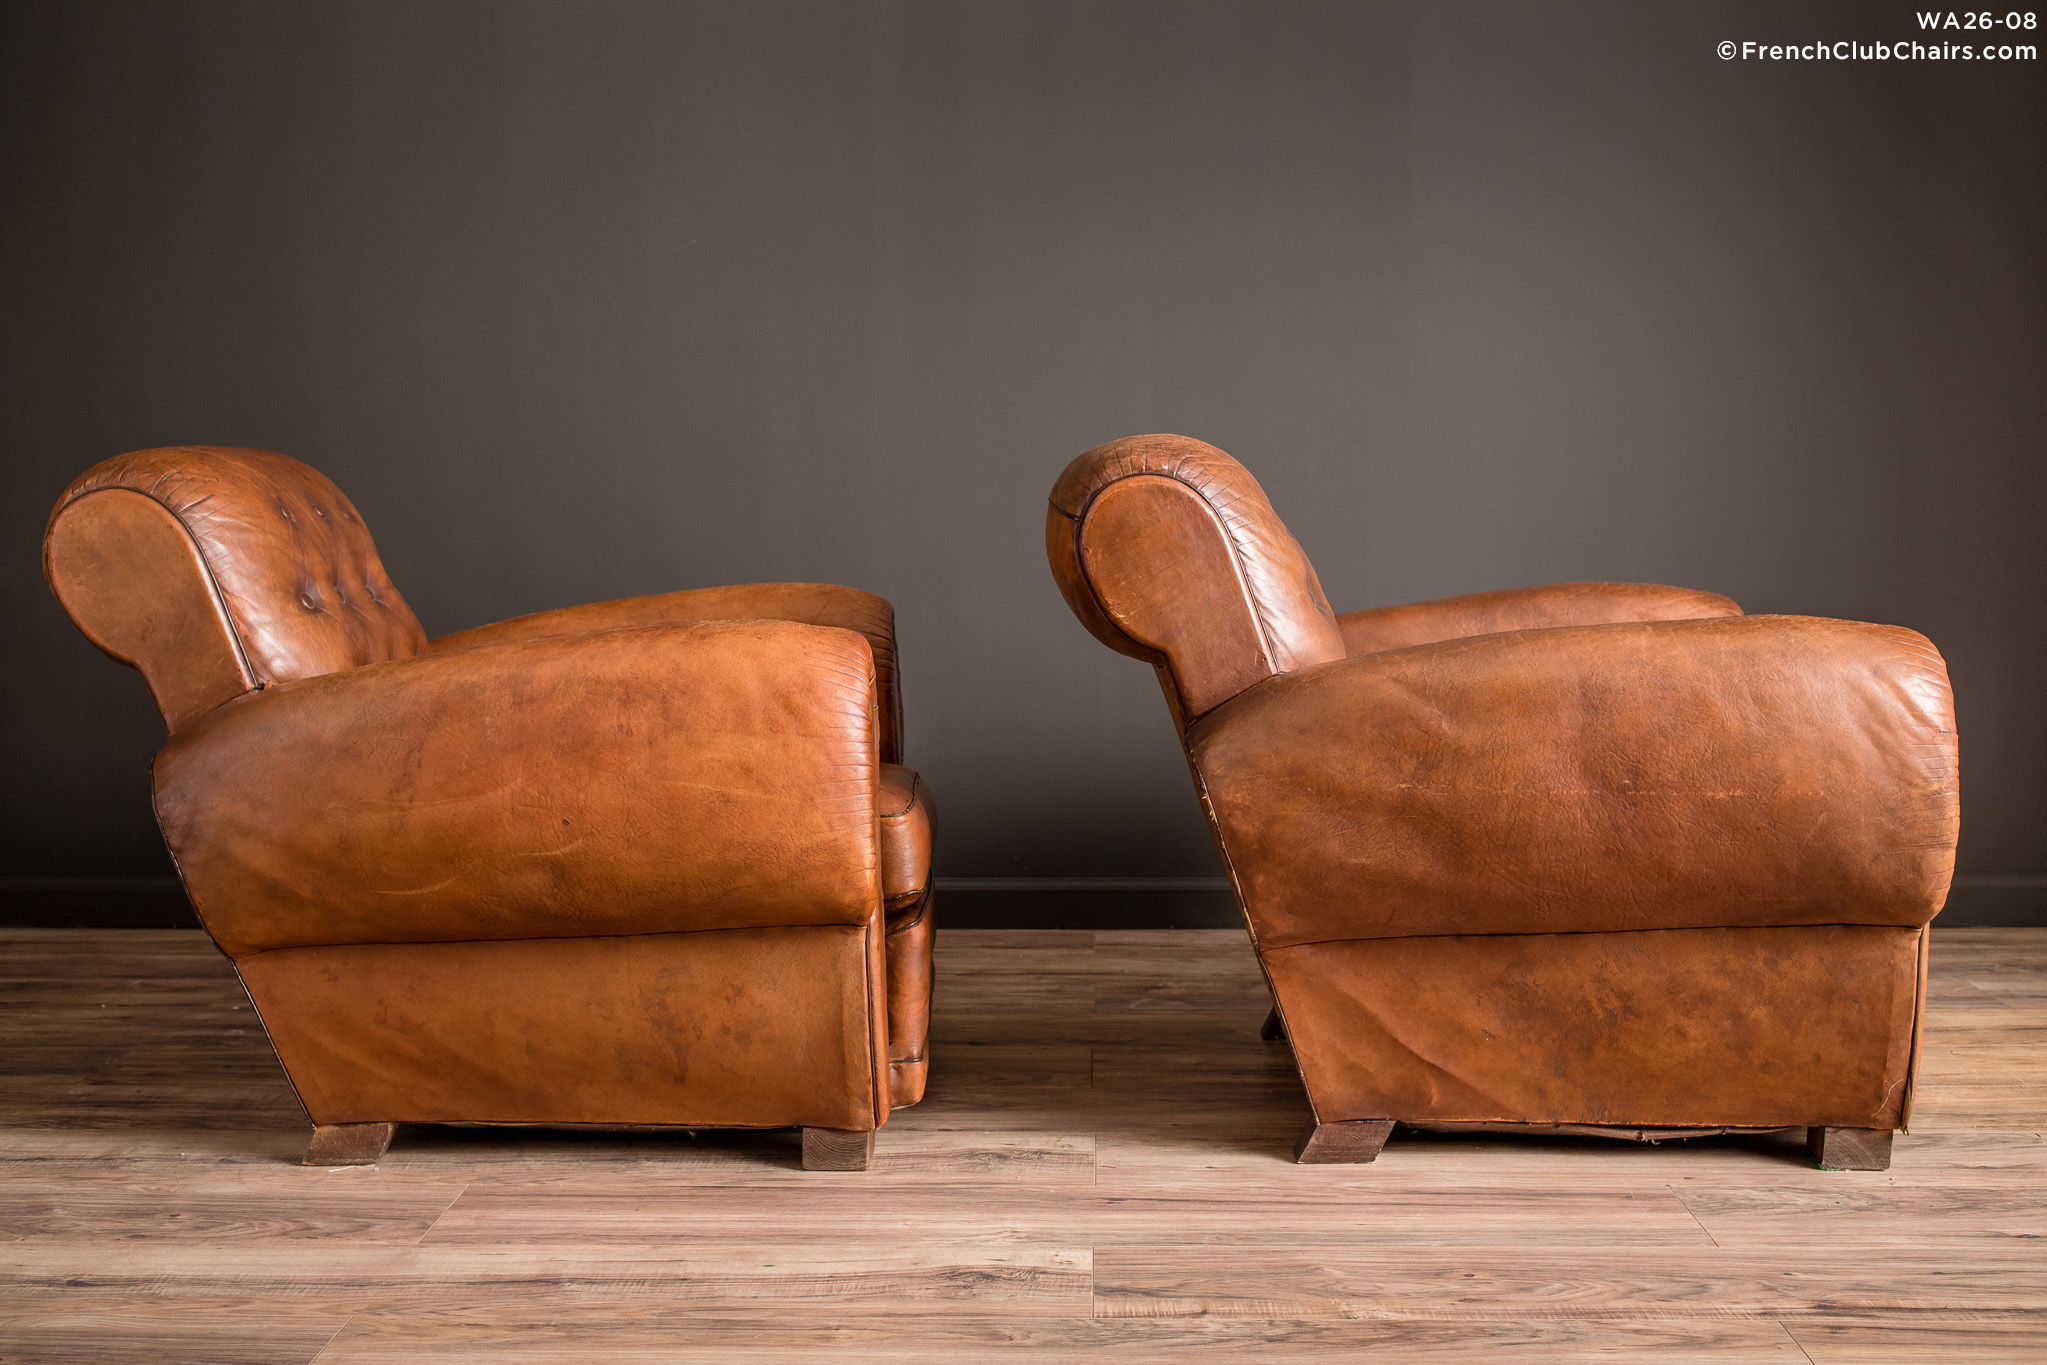 WA_26-08_Pigalle_Rollback_Classic_Pair_R_3RT-v01-williams-antiks-leather-french-club-chair-wa_fcccom